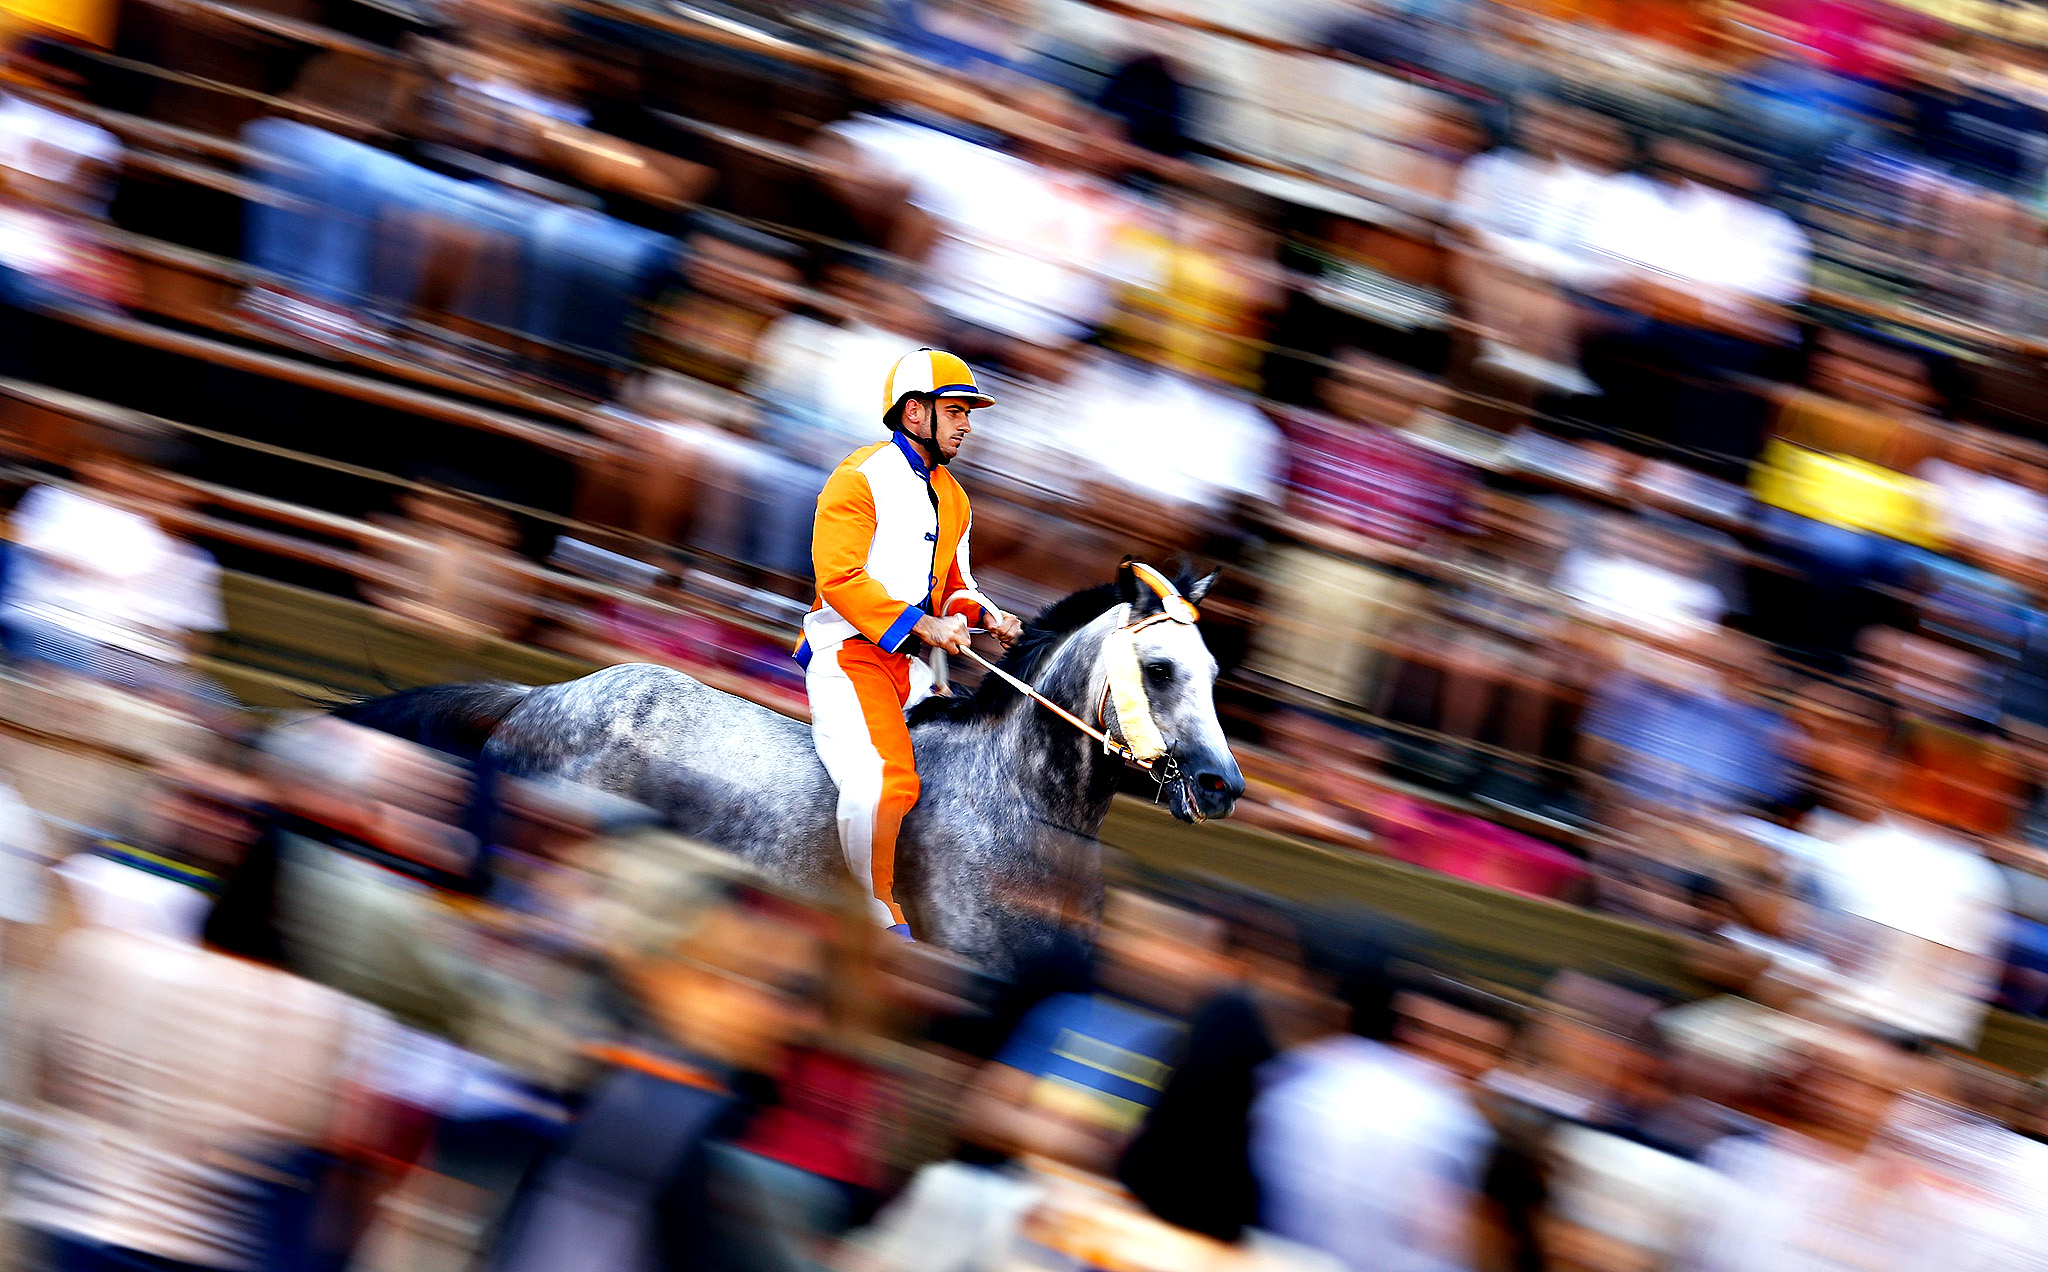 "Giuseppe Zedde of ""Leocorno"" or Unicorn parish rides his horse during the last day of practice for the Palio horse race in Siena...Giuseppe Zedde of ""Leocorno"" or Unicorn parish rides his horse during the last day of practice for the Palio horse race in Siena  August 15, 2014. Each July 2 and August 16, almost without fail since the mid-1600s, 10 riders have hurtled bareback around Siena's shell-shaped central square in a desperate bid to win the Palio, a silk banner depicting the Madonna and child."